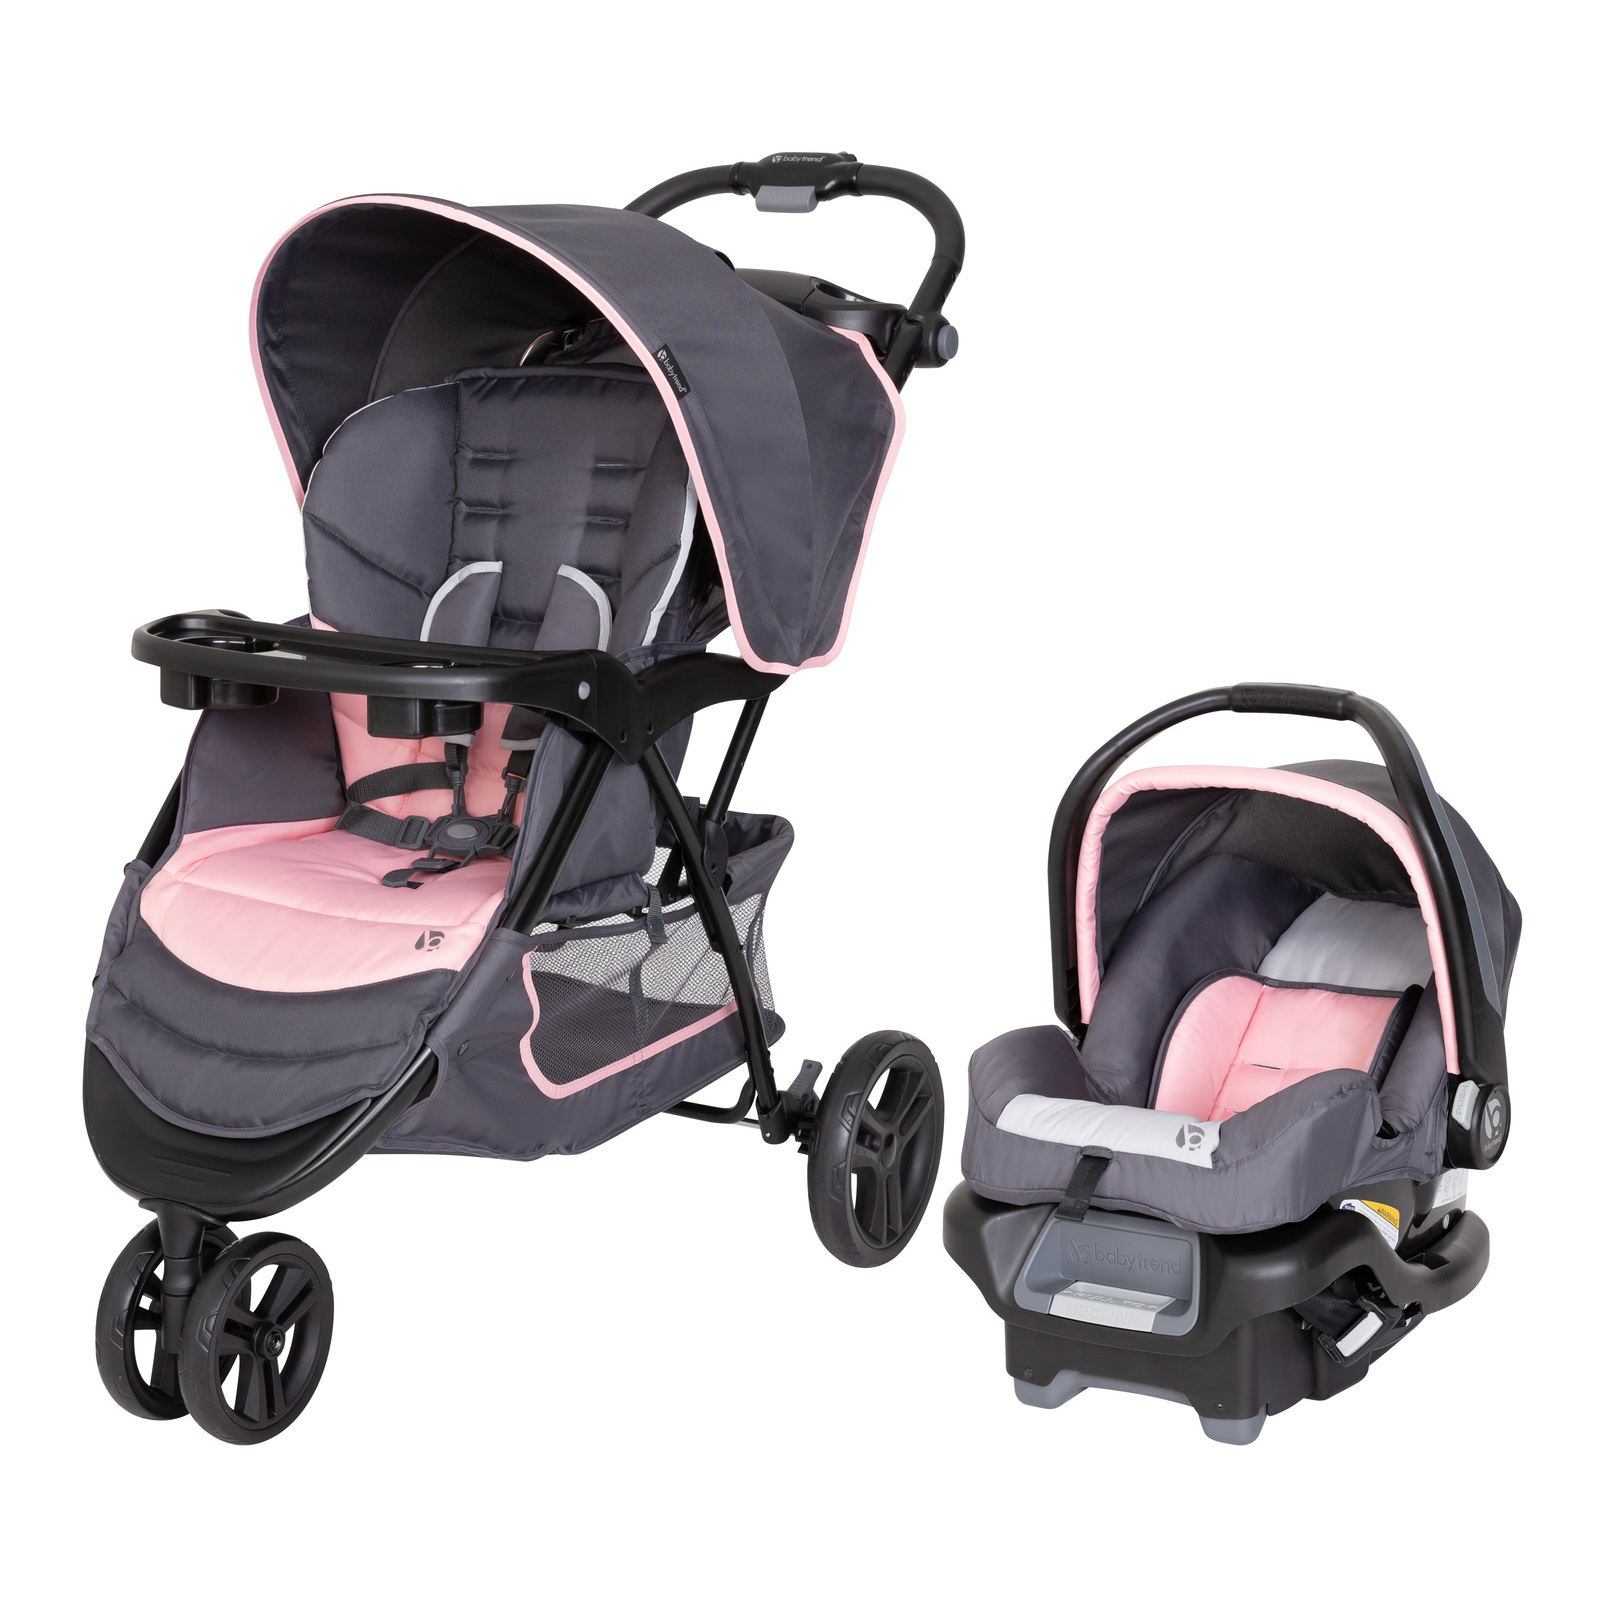 Baby Trend Flamingo EZ Ride Jogger Travel System, Flamingo Pink - $117.99